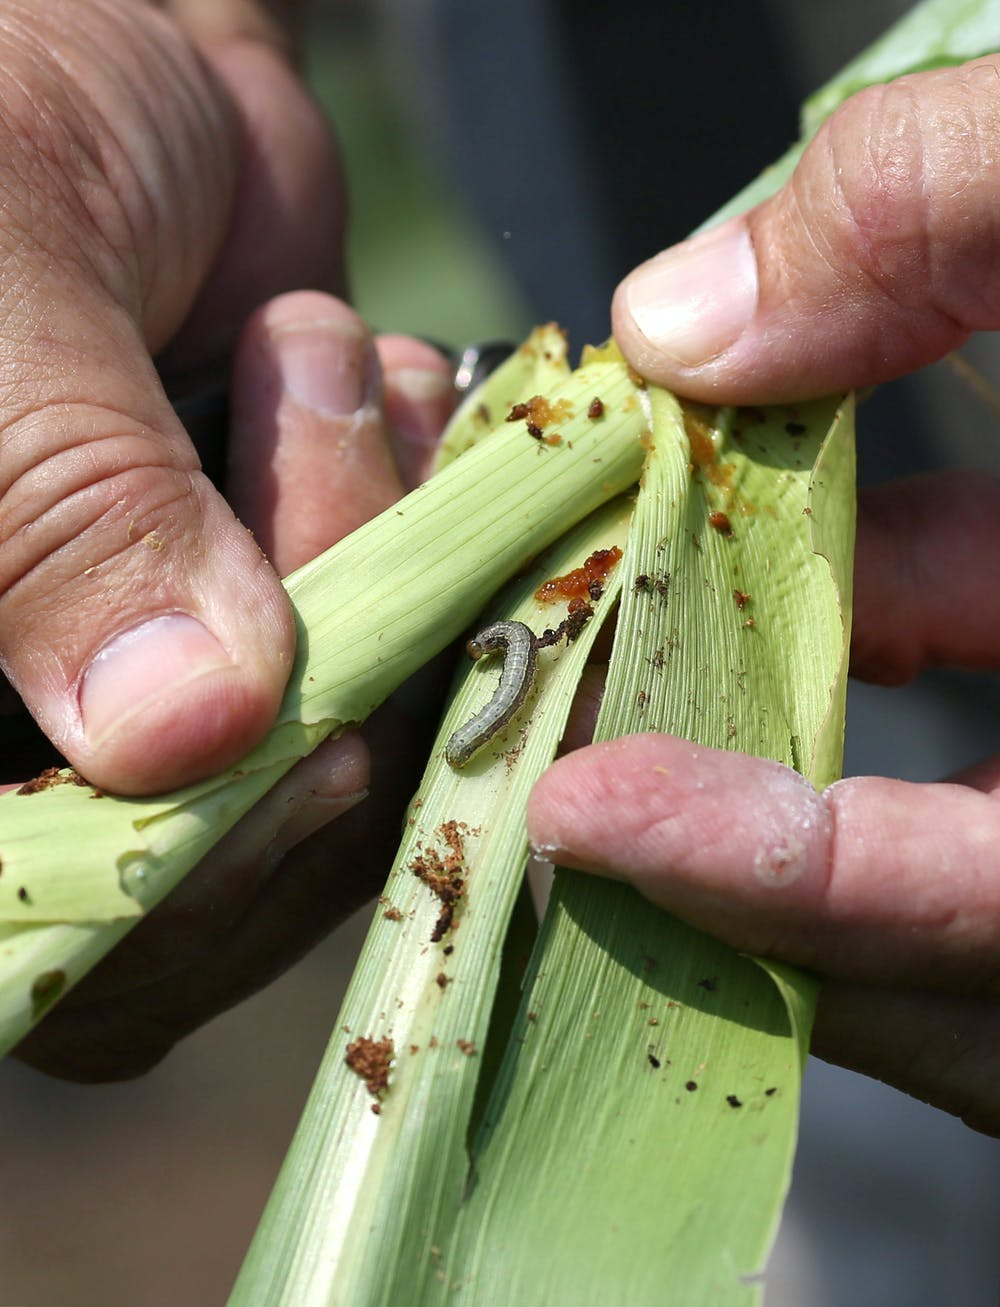 An armyworm is seen on a sorghum plant in South Africa. Photo credit: Reuters